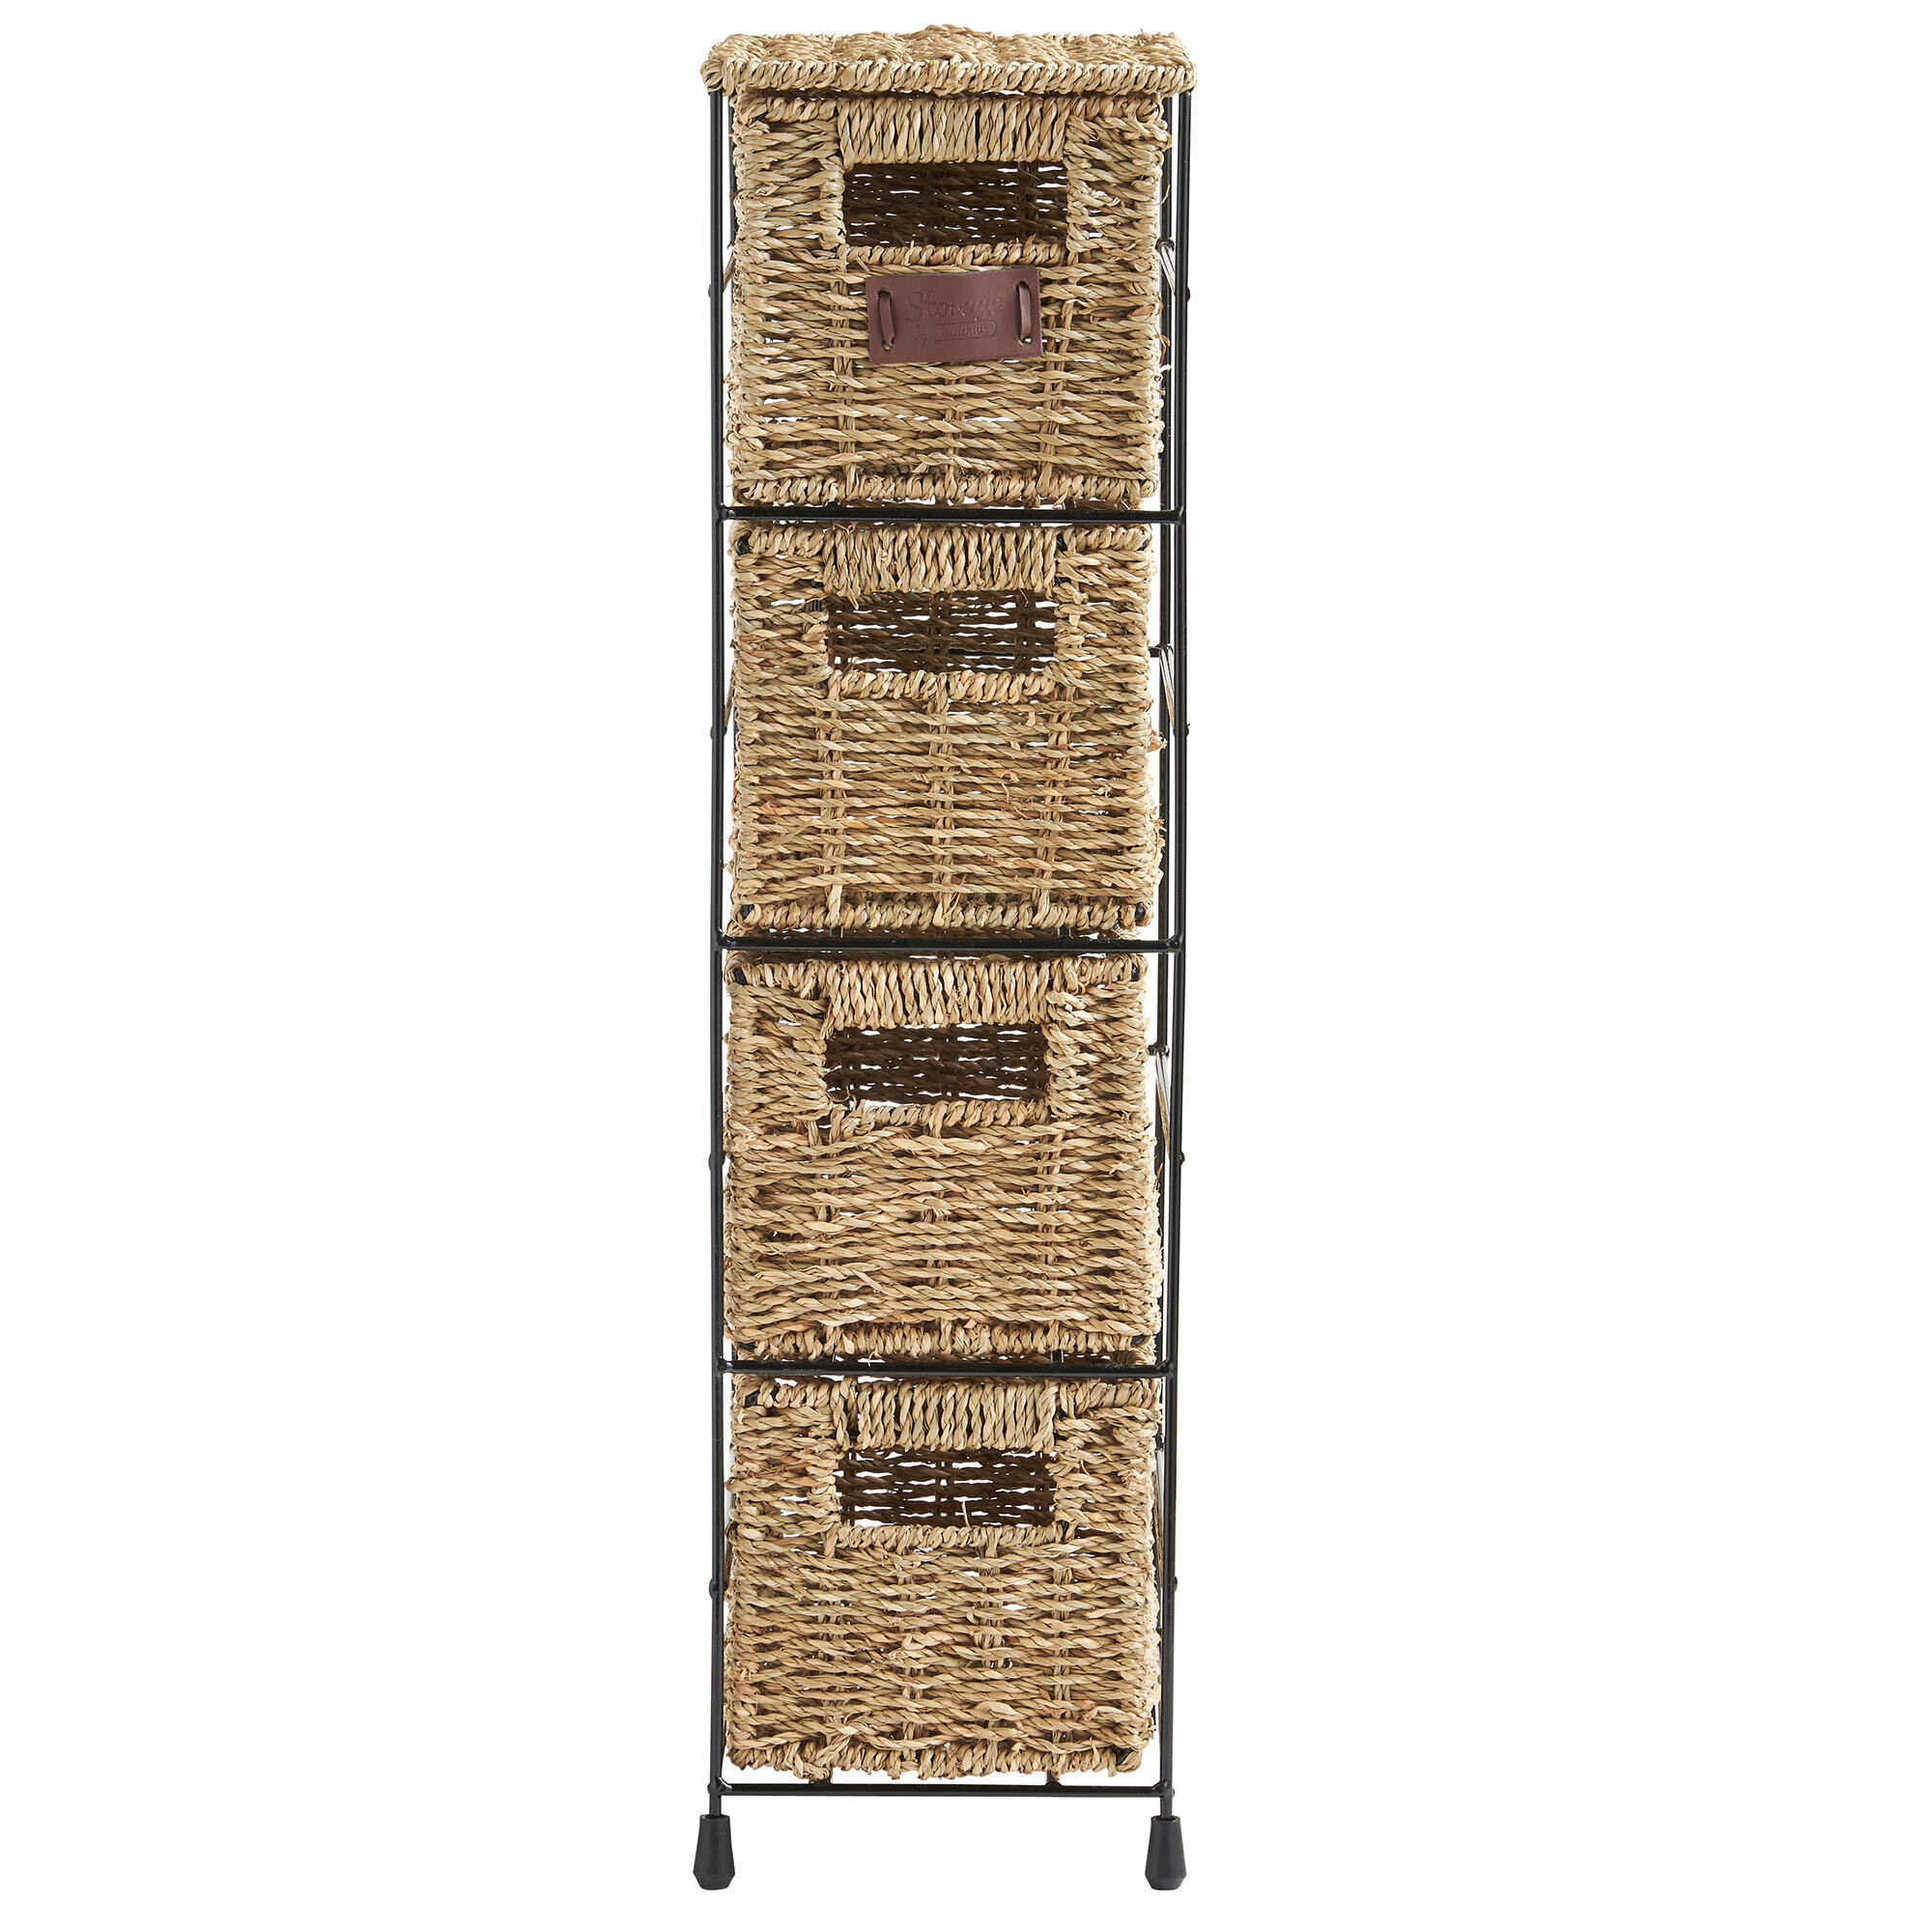 VonHaus 4 Tier Seagrass Storage Basket Tower Unit & Reviews | Wayfair